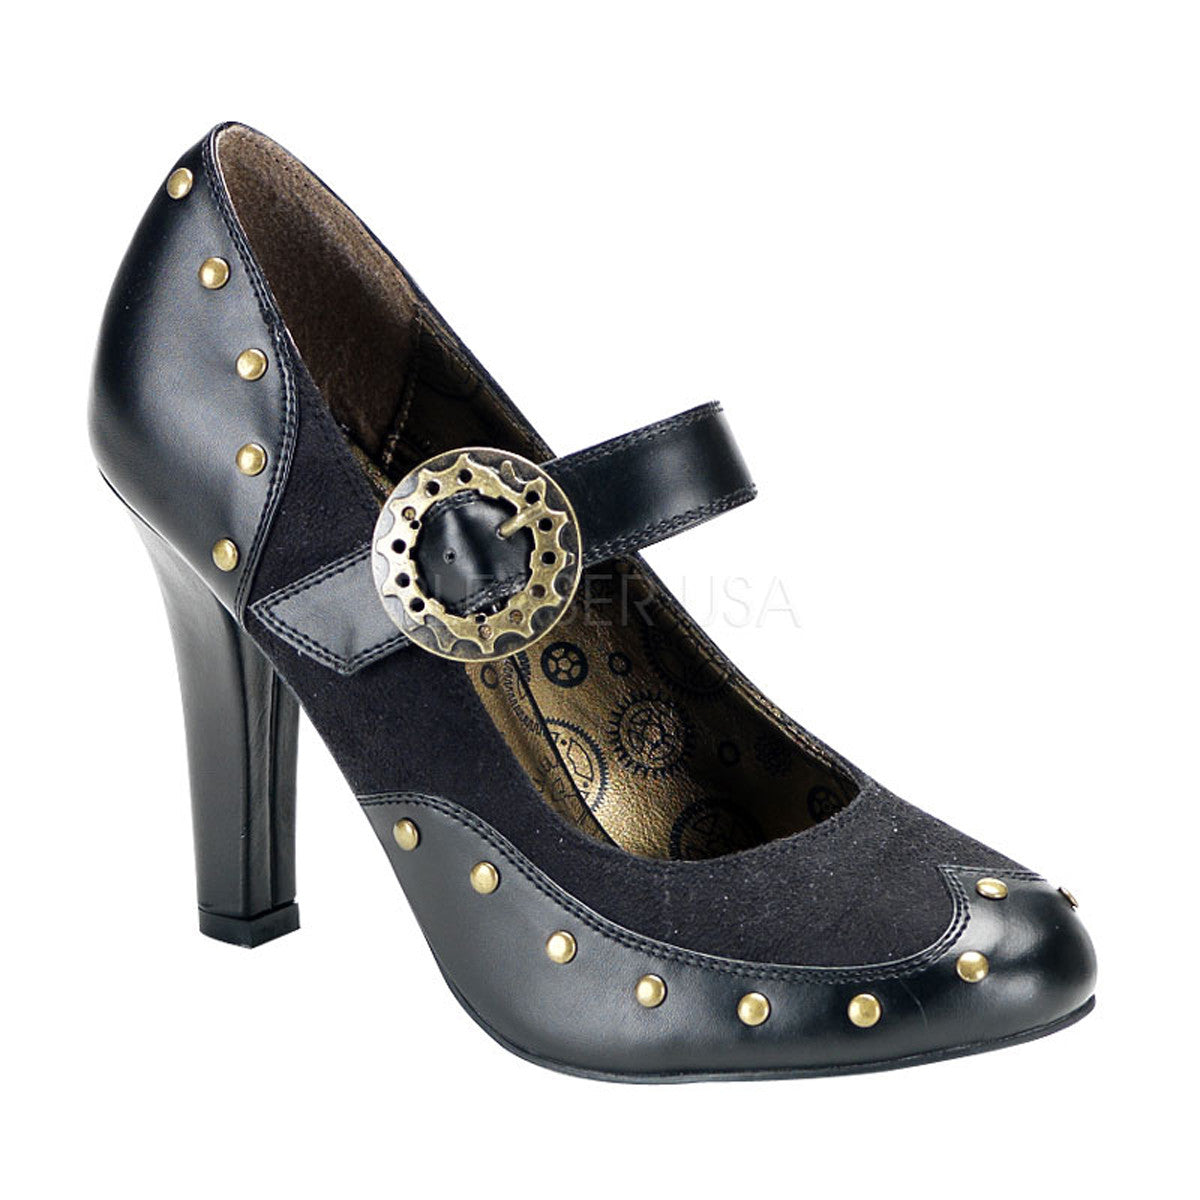 TESLA-08 Steampunk Shoes